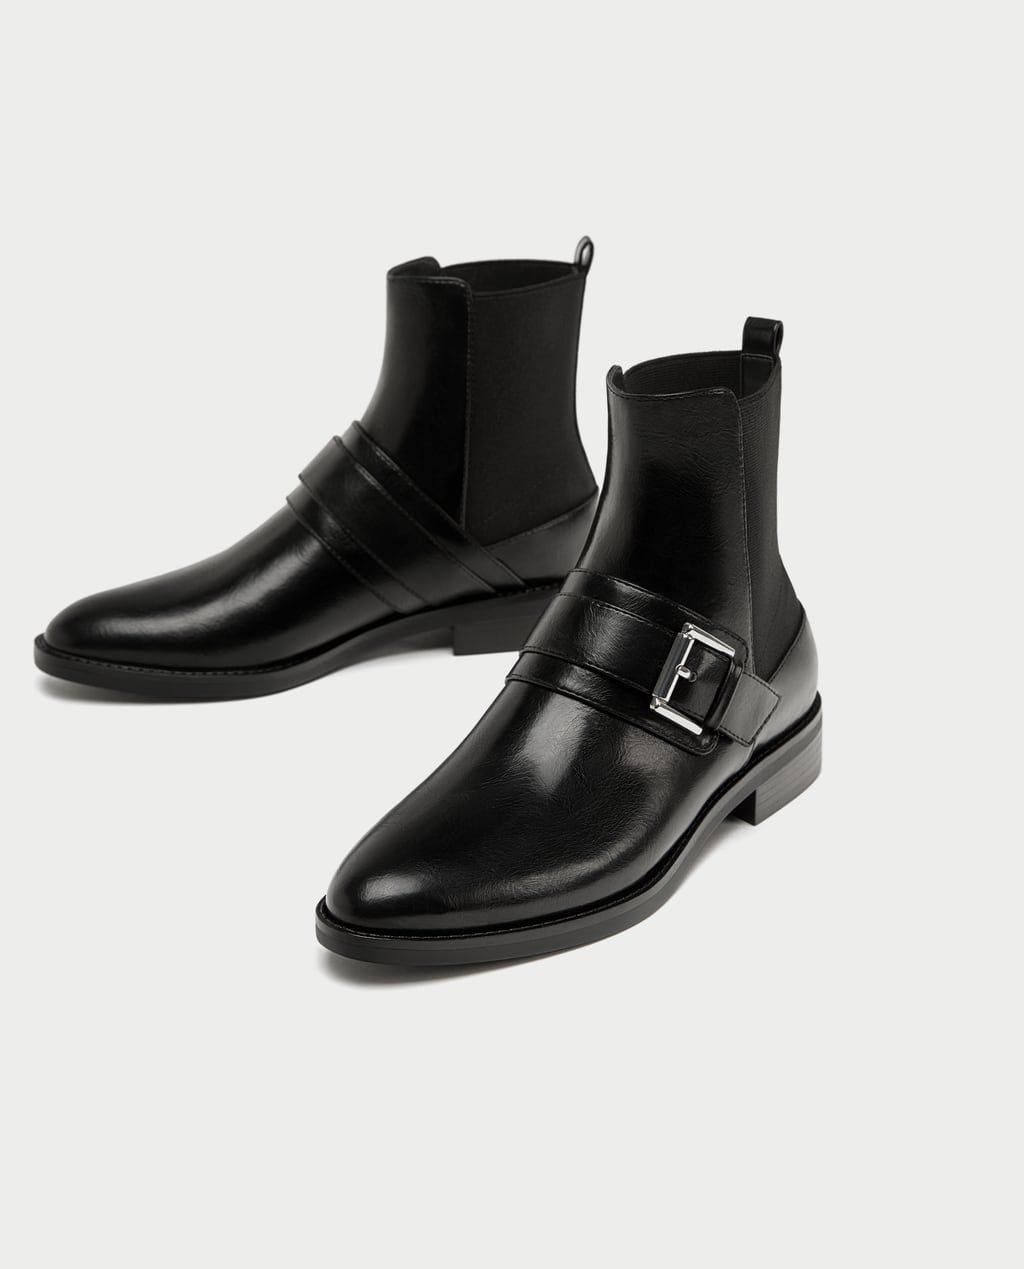 c7a28e1340f Image 5 of FLAT ANKLE BOOTS WITH BUCKLES from Zara